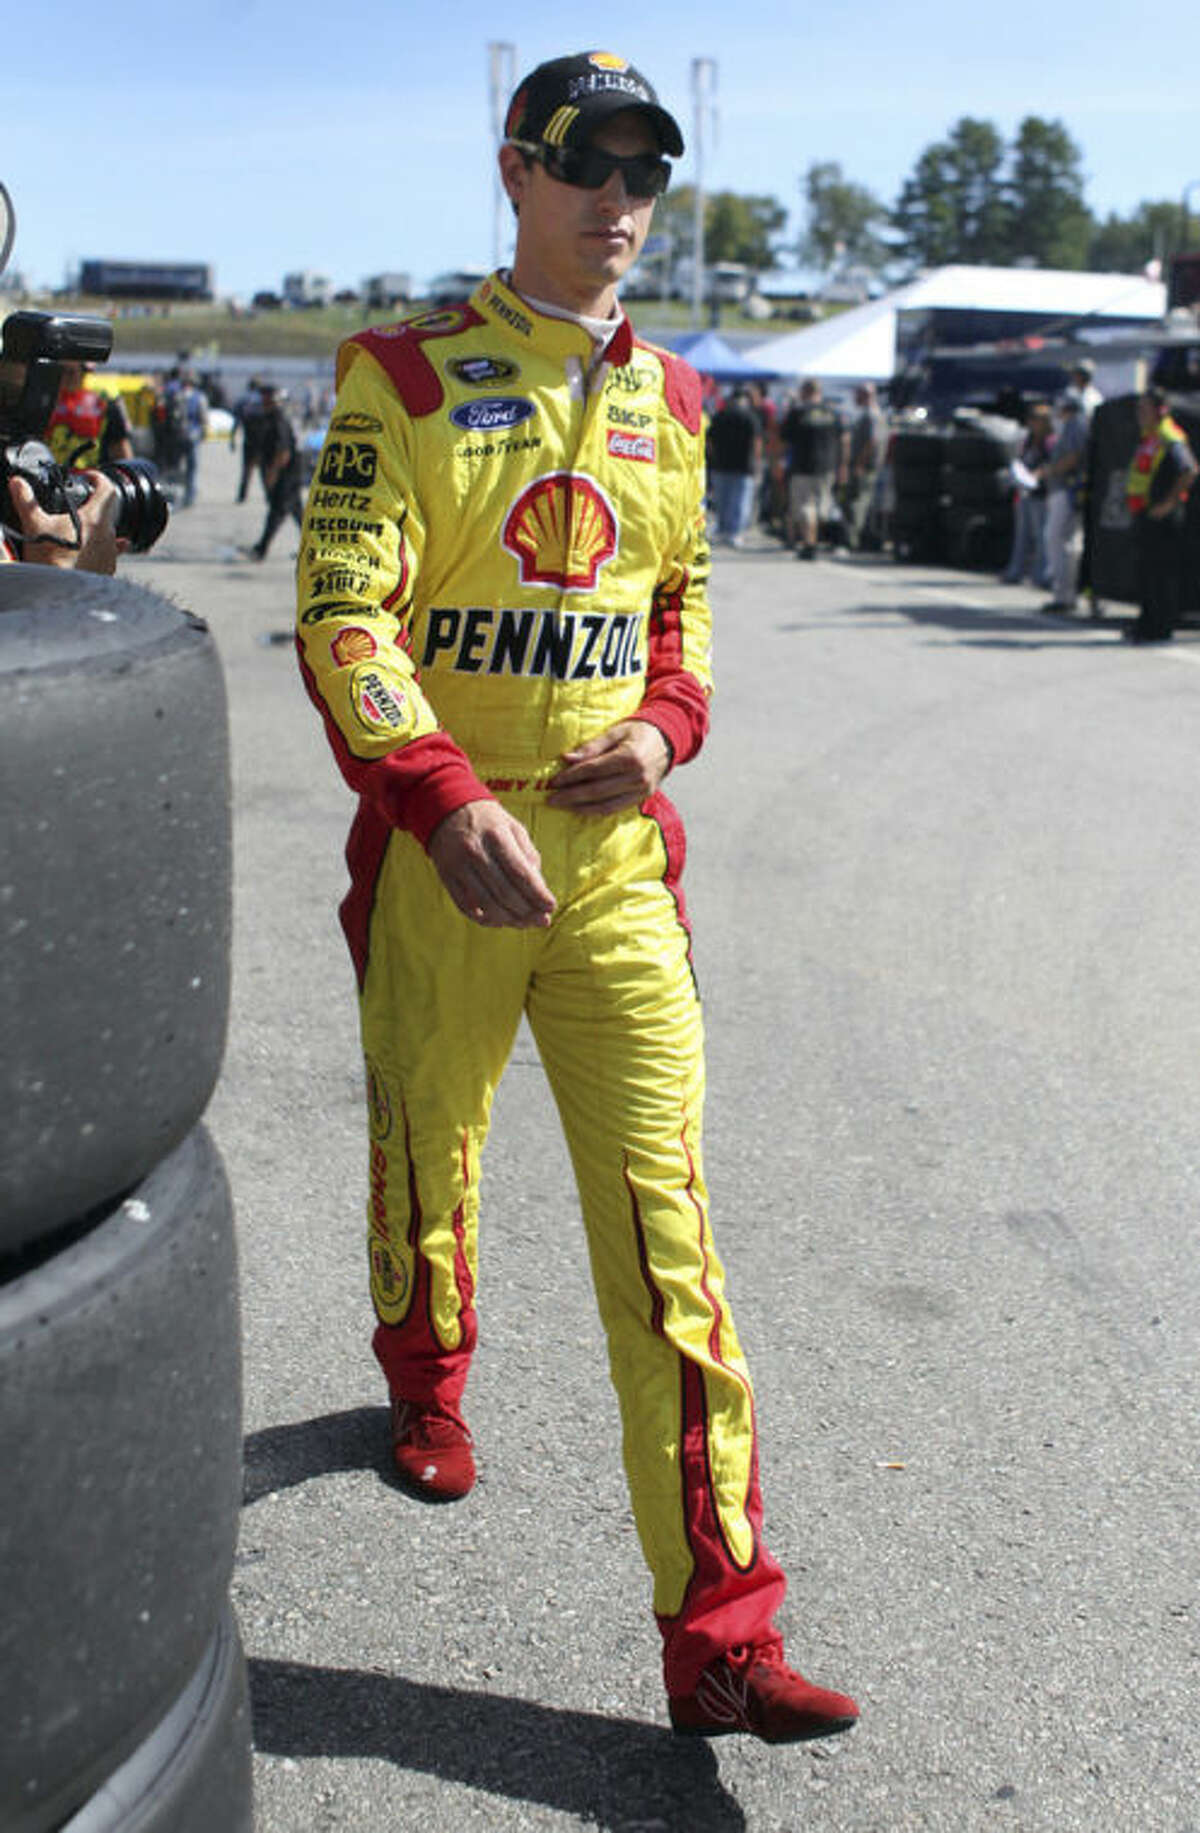 Joey Logano leaves his garage at the conclusion of practice for Sunday's NASCAR Sprint Cup Series auto race at New Hampshire Motor Speedway, Friday, Sept. 20, 2013, in Loudon, N.H. (AP Photo/Mary Schwalm)